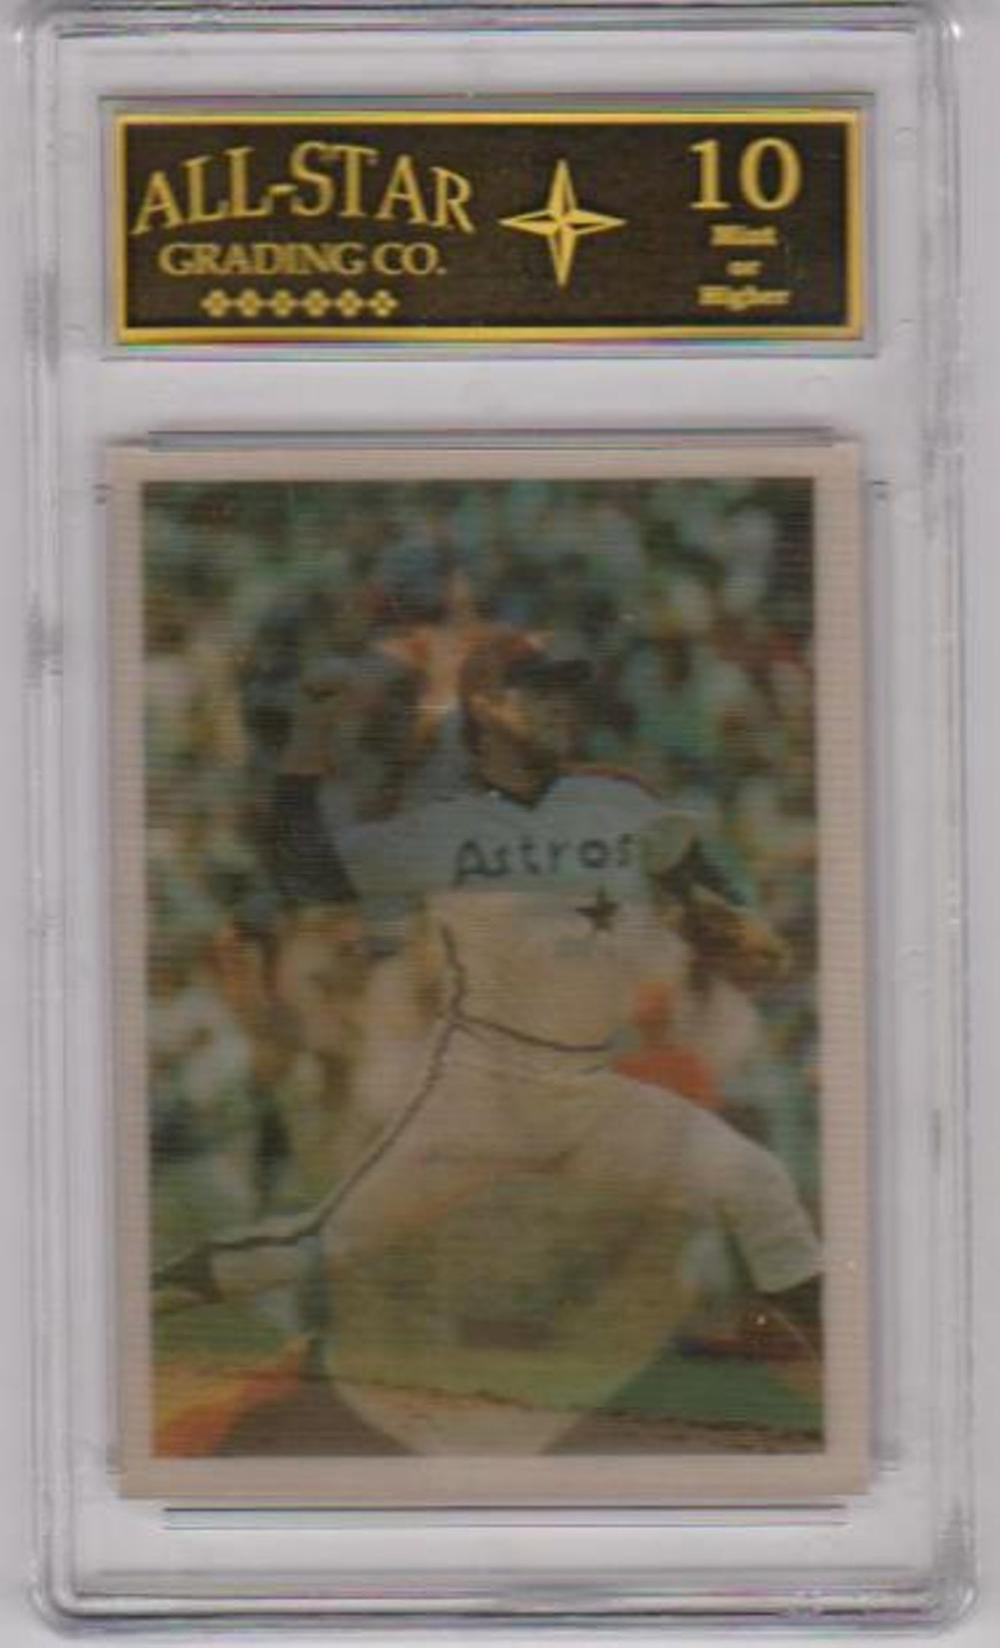 Graded 10 - Nolan Ryan 1986 Sportsflics #43 Card - HOF'er